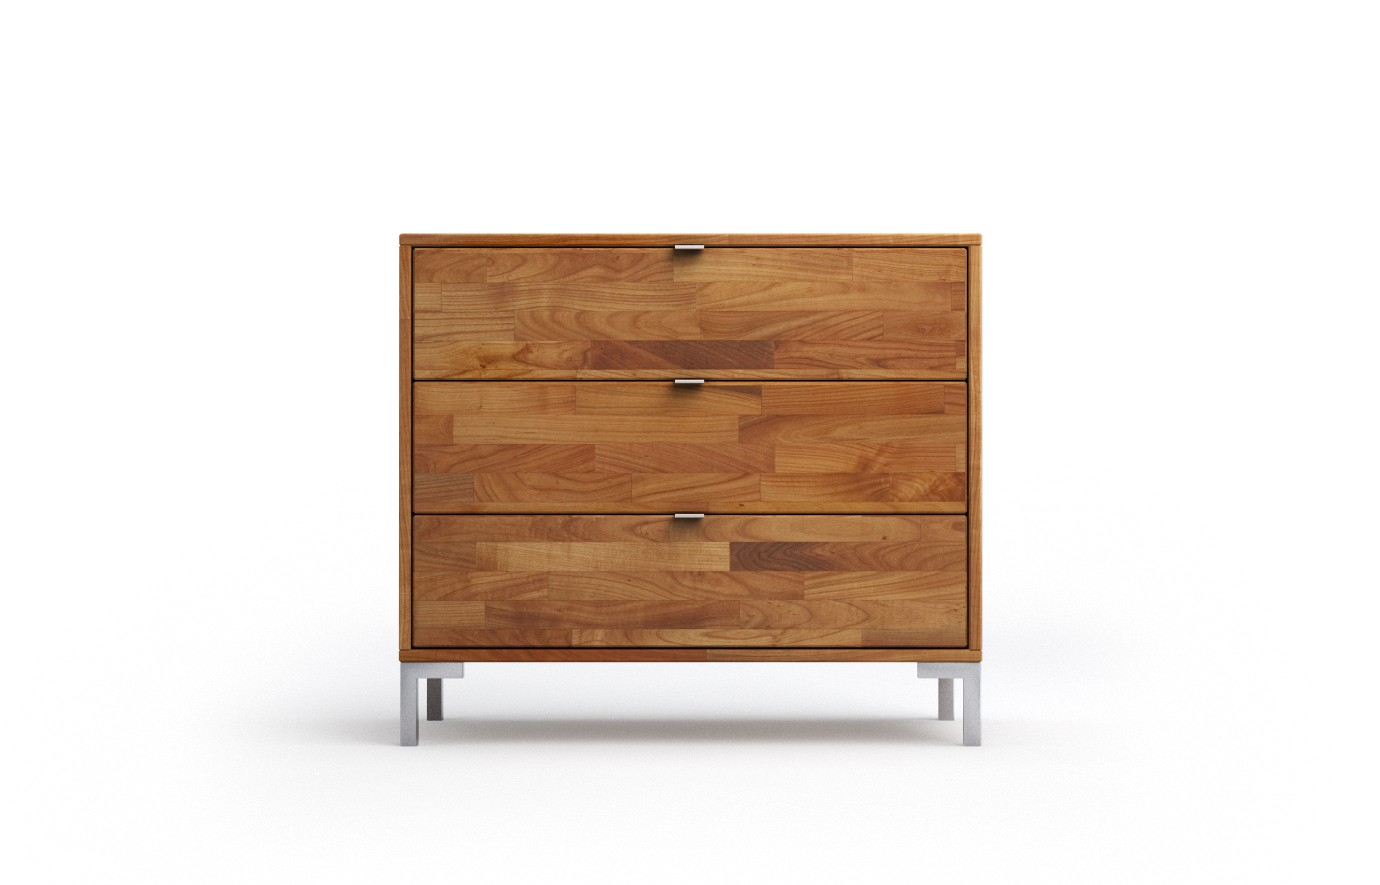 kapuas in kirschbaum sideboard. Black Bedroom Furniture Sets. Home Design Ideas